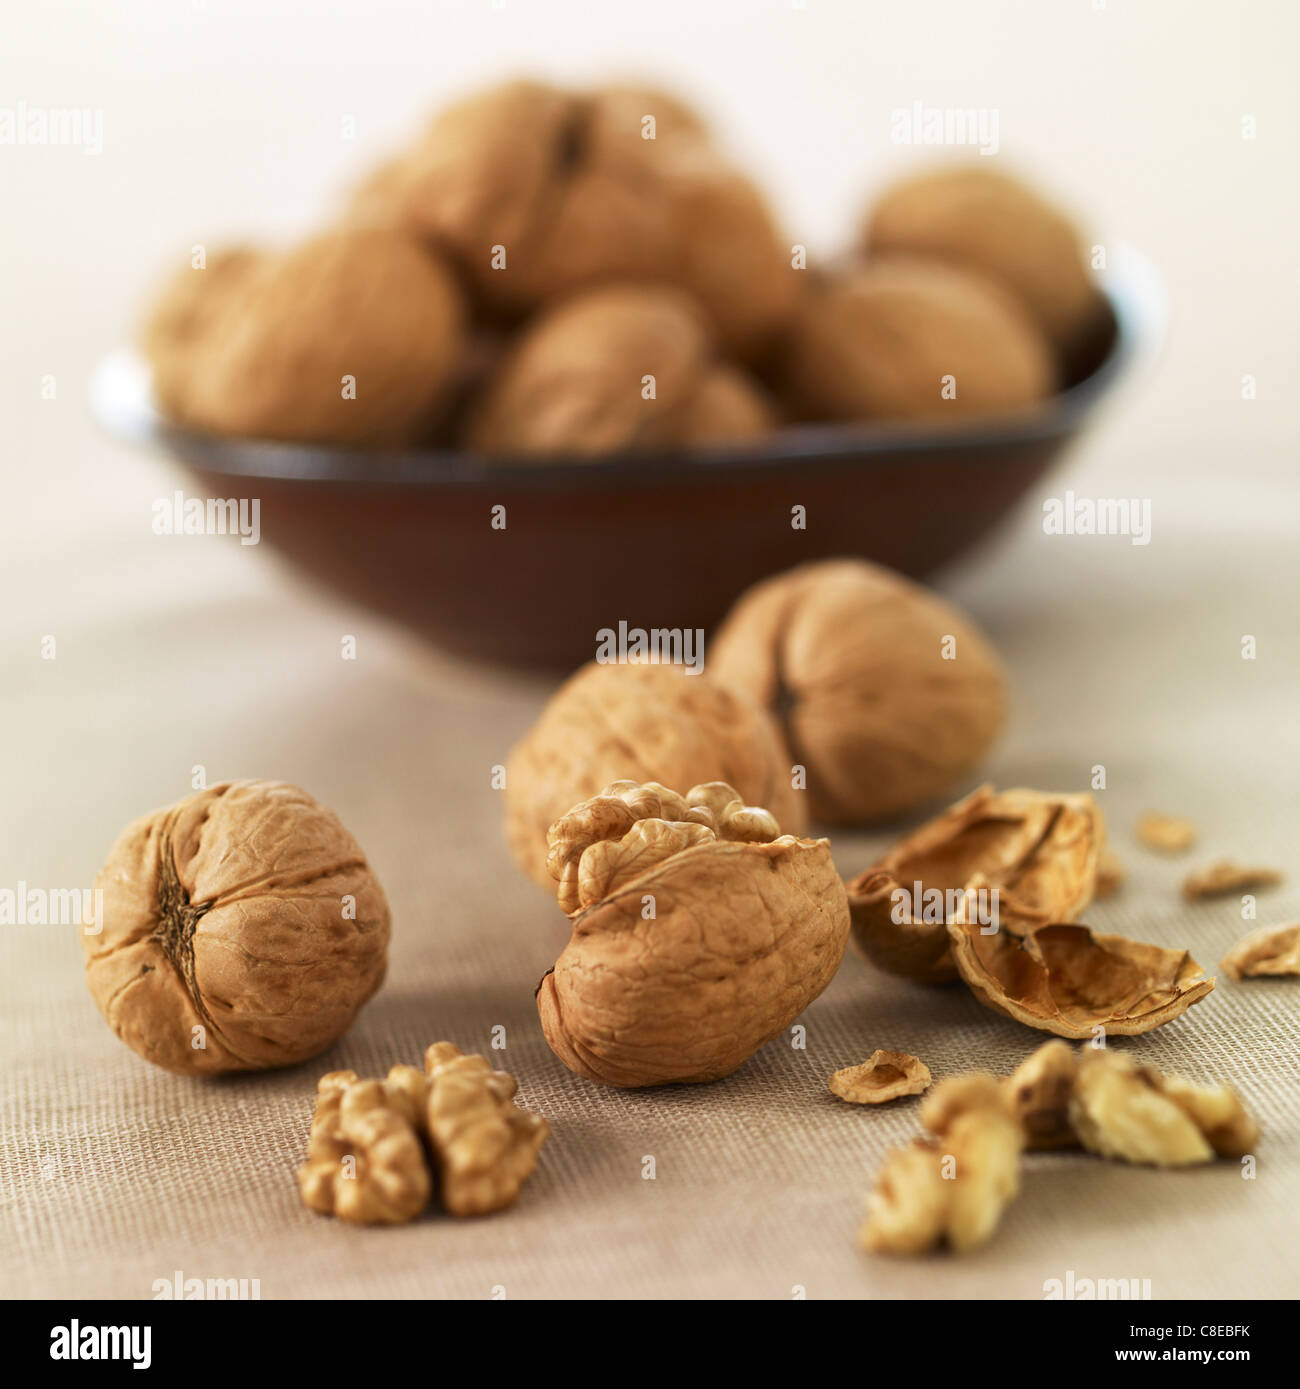 Walnuts - Stock Image